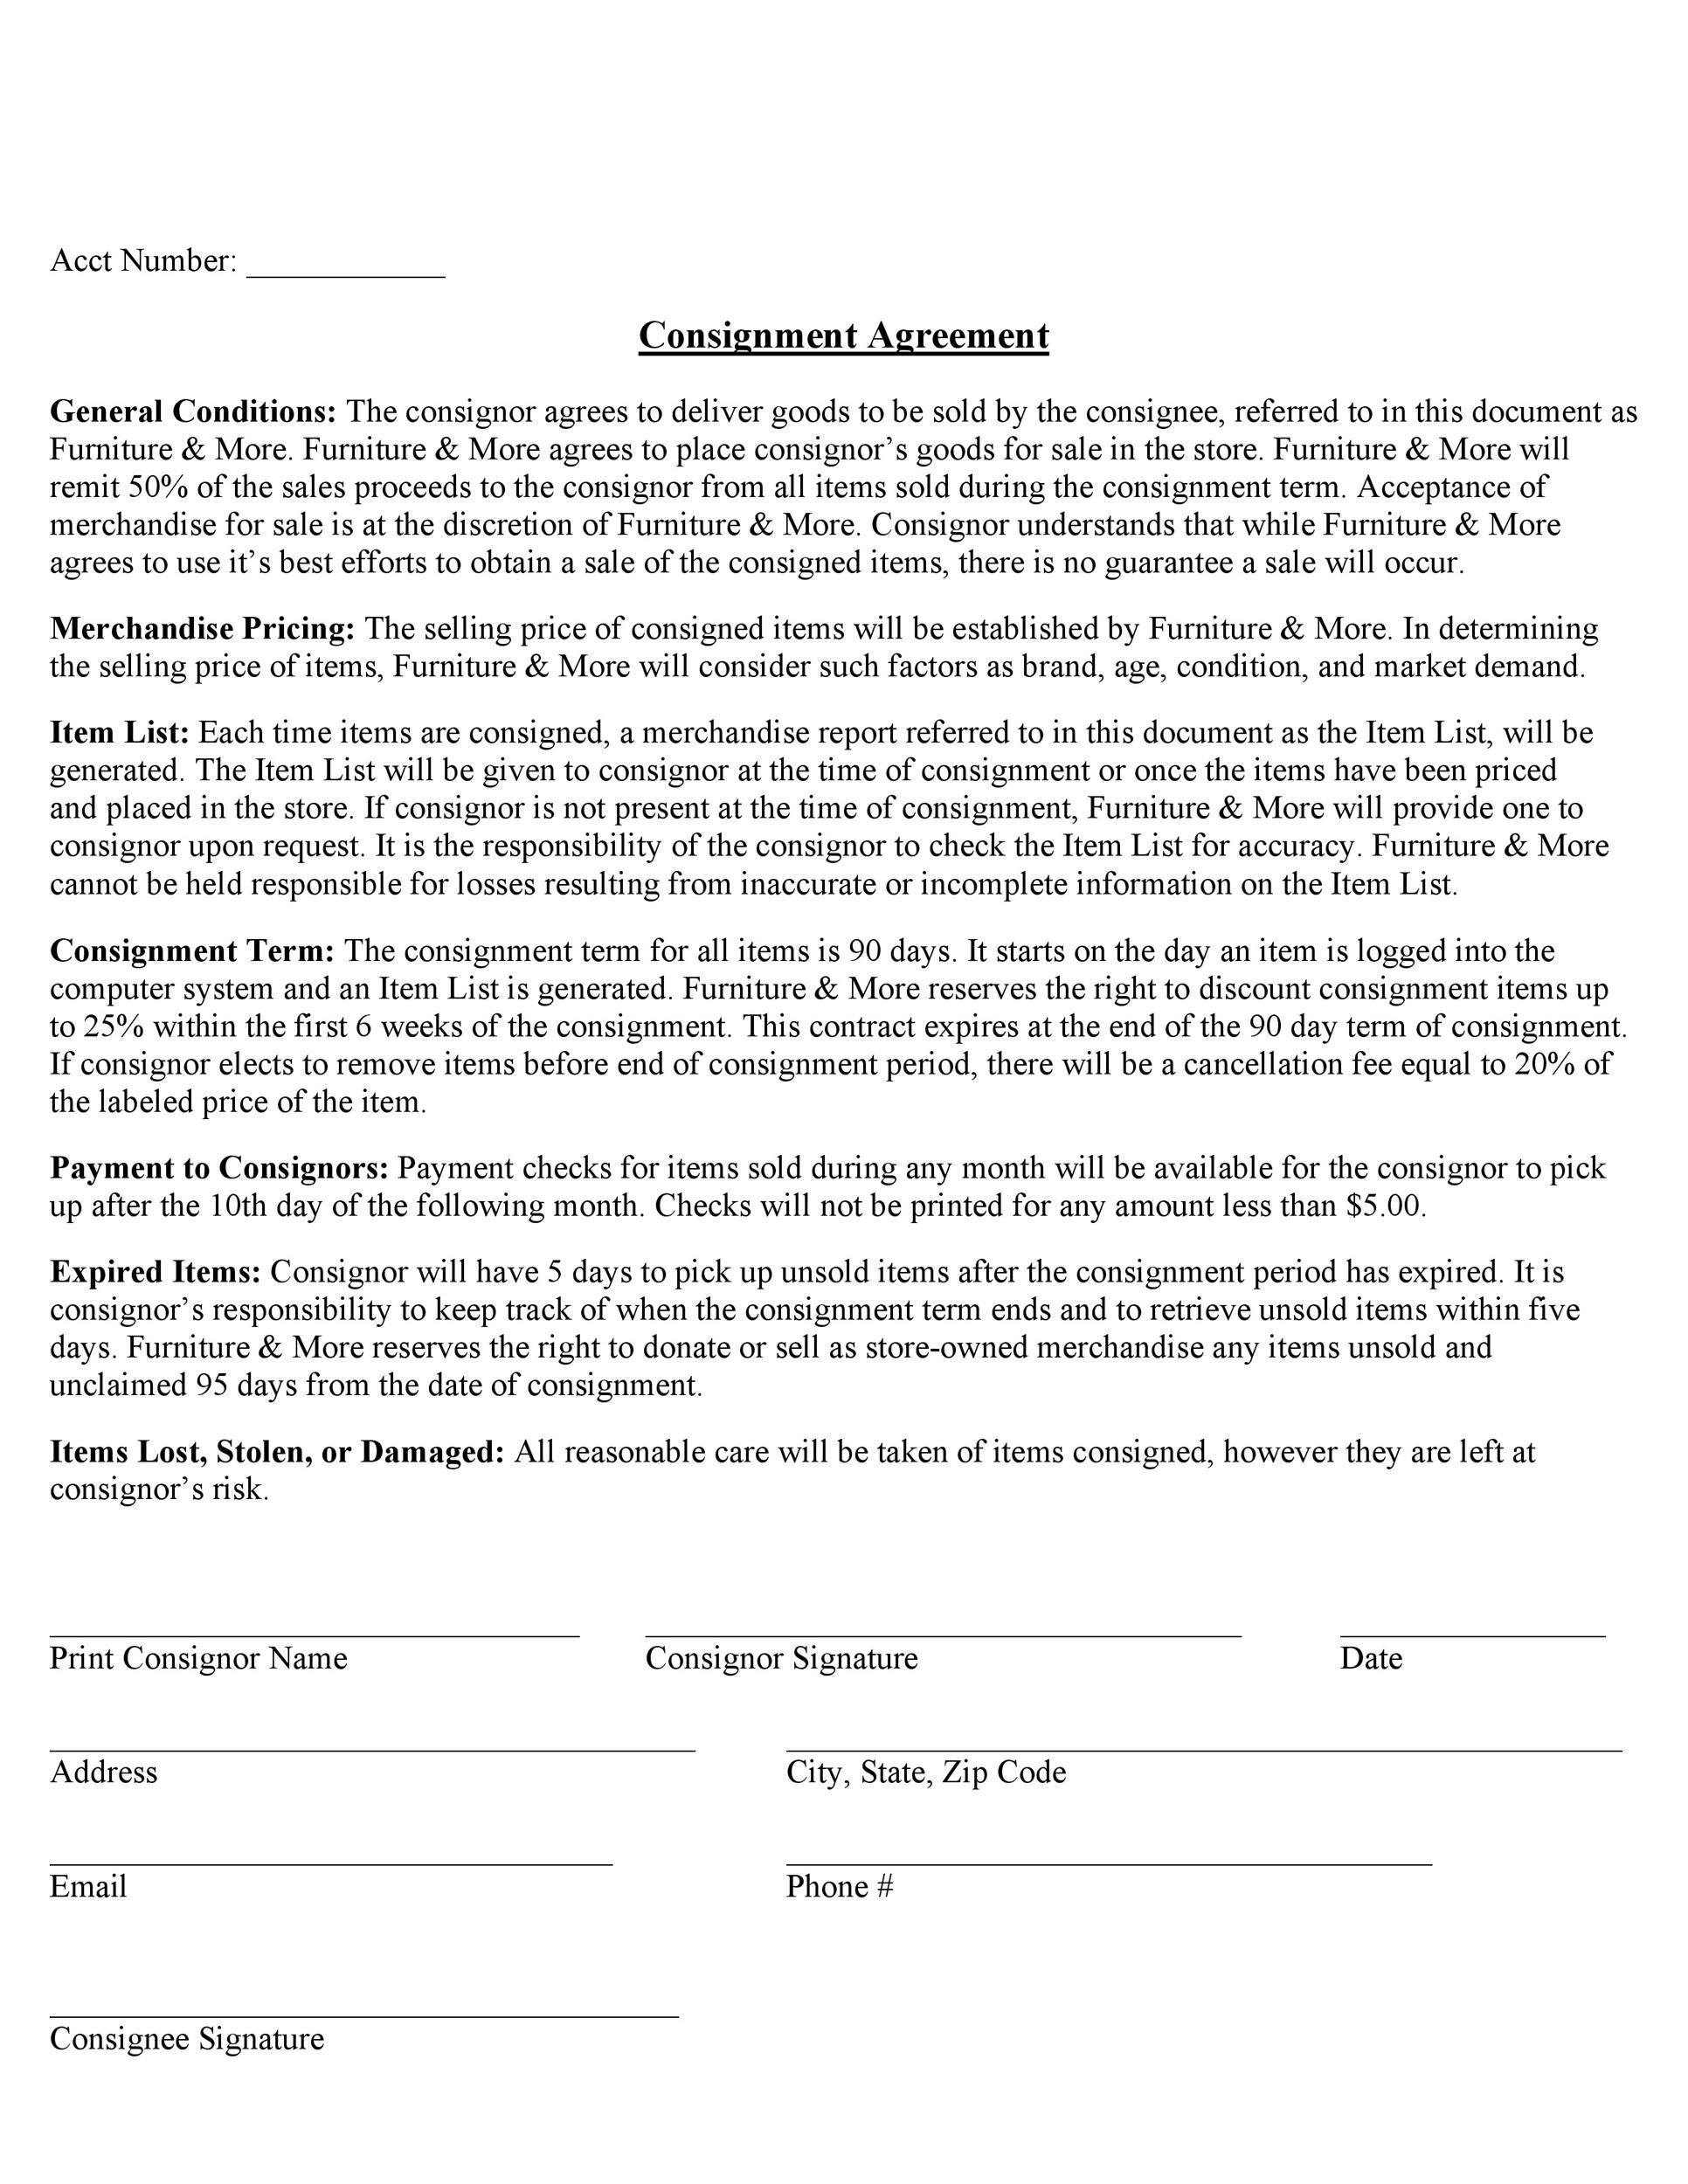 Free Consignment Agreement Template 37